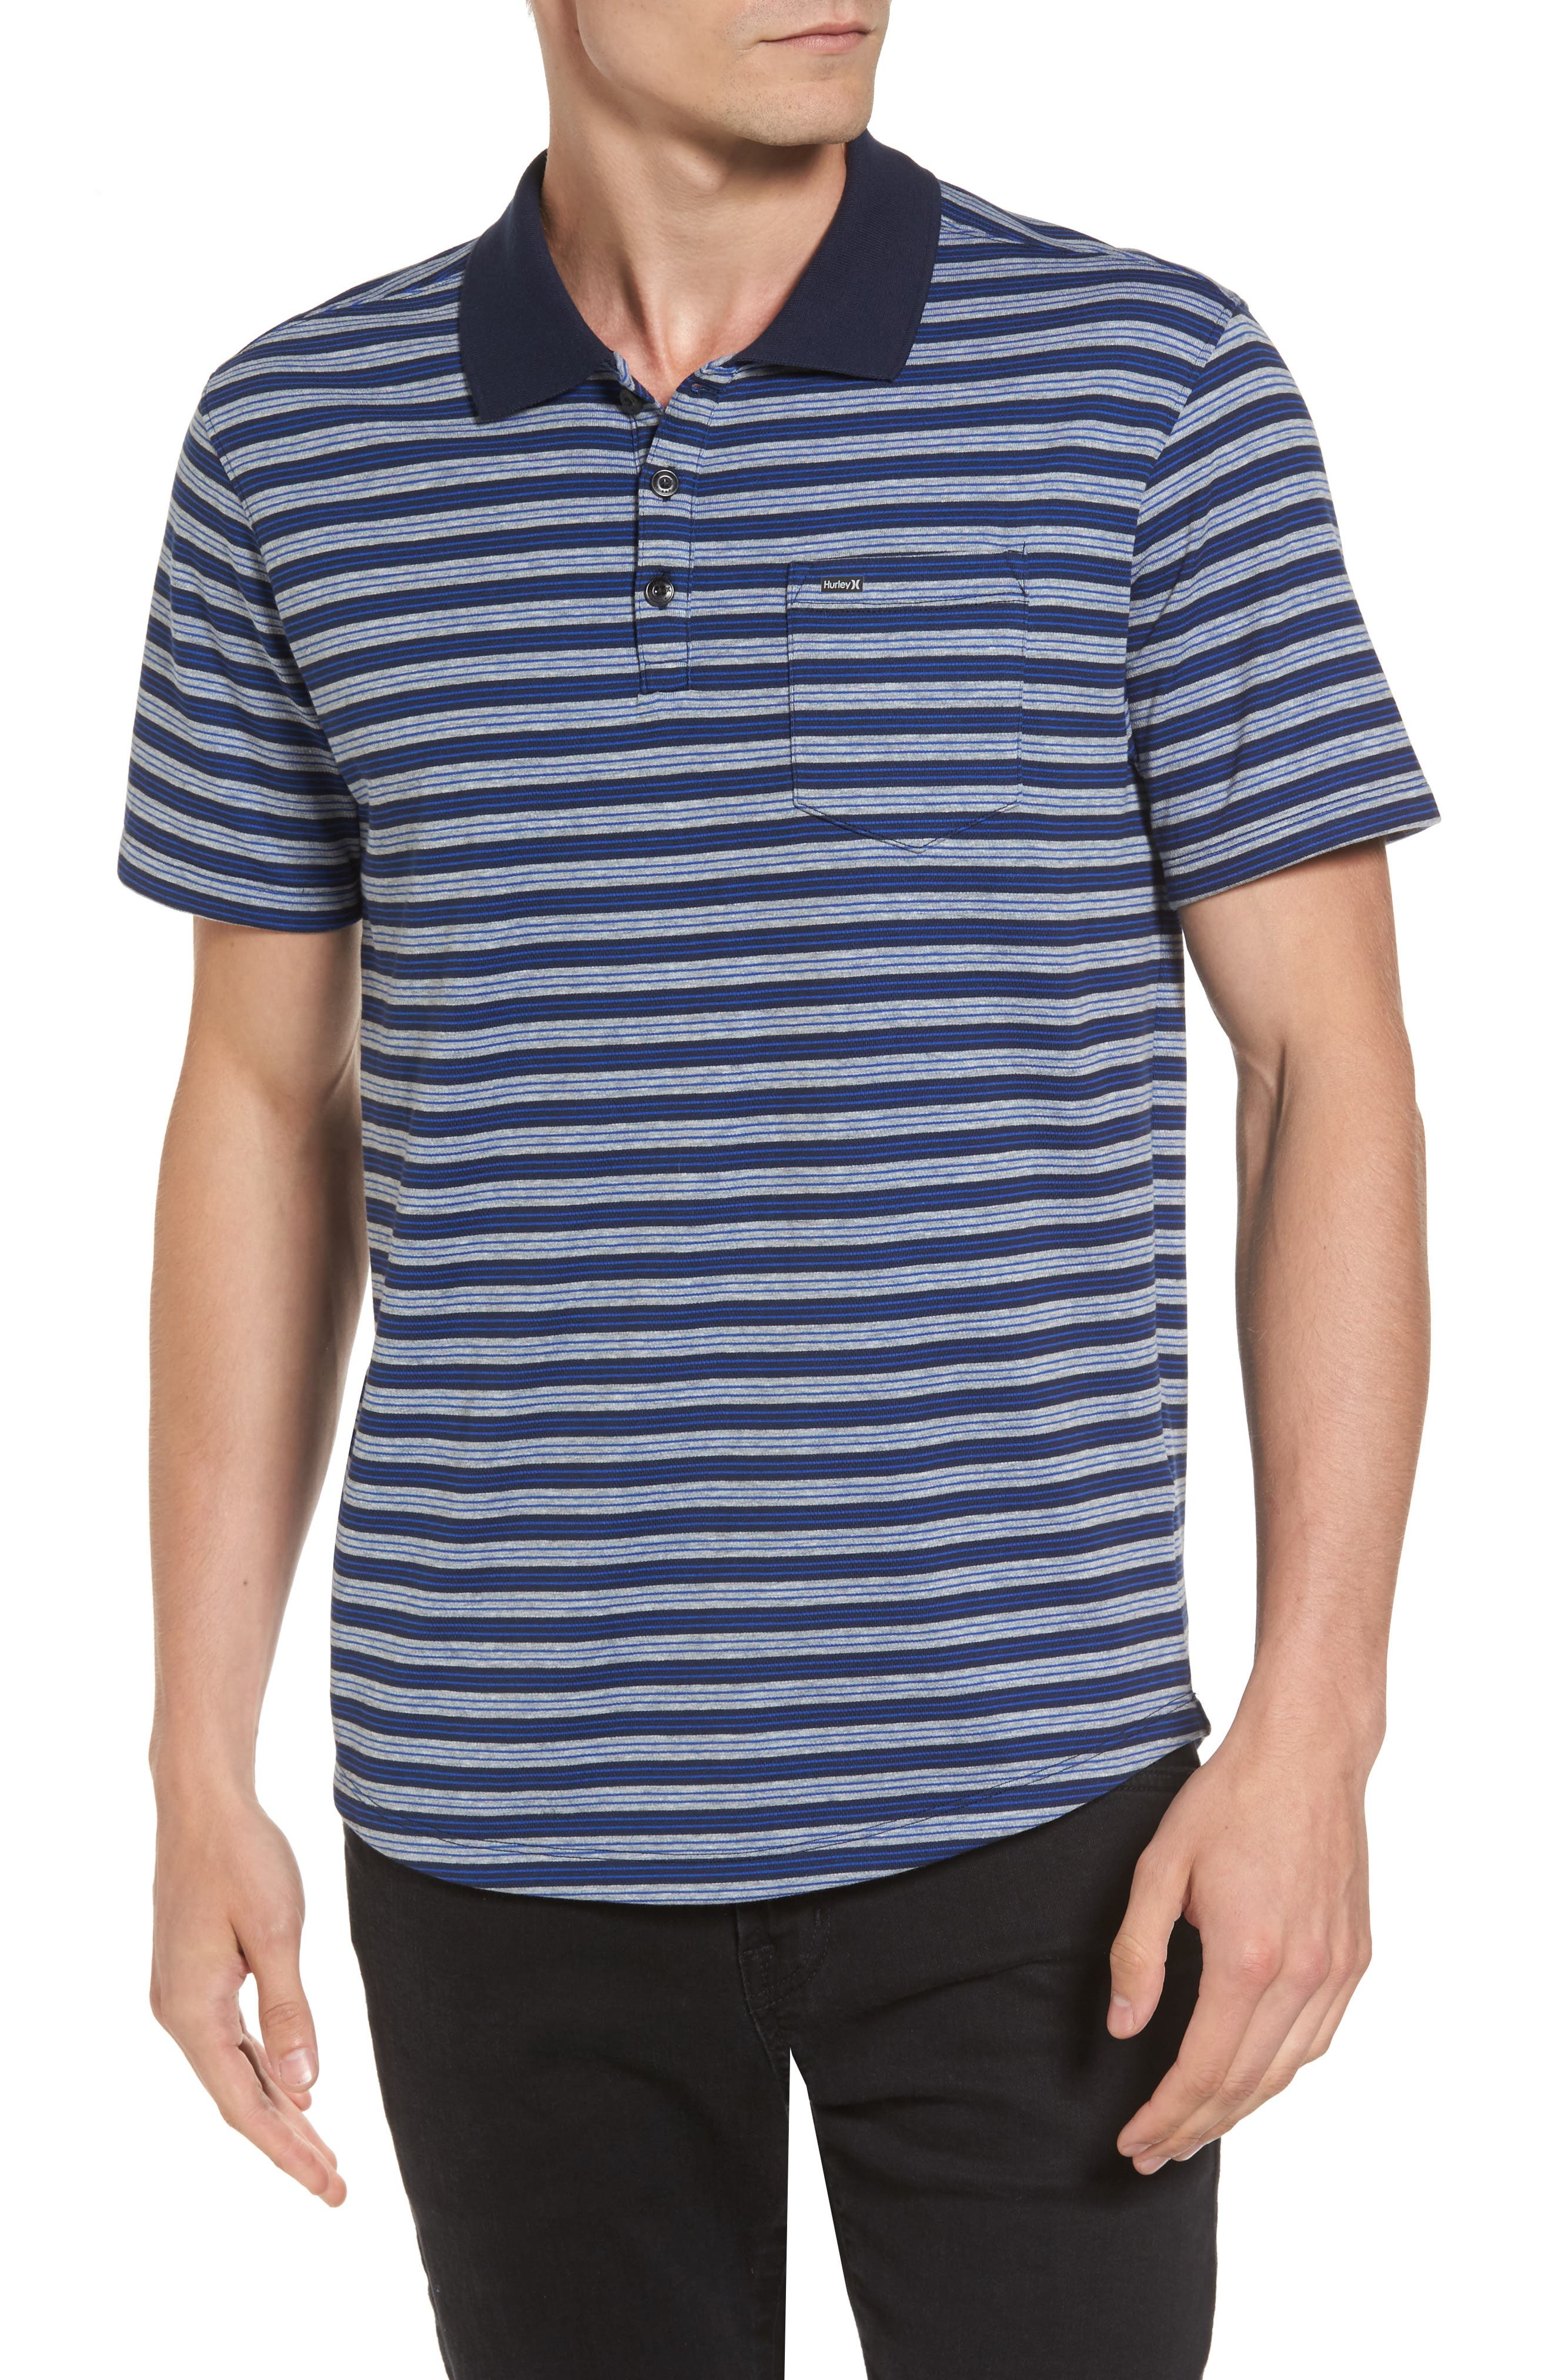 Alternate Image 1 Selected - Hurley Tower 5 Dri-FIT Polo